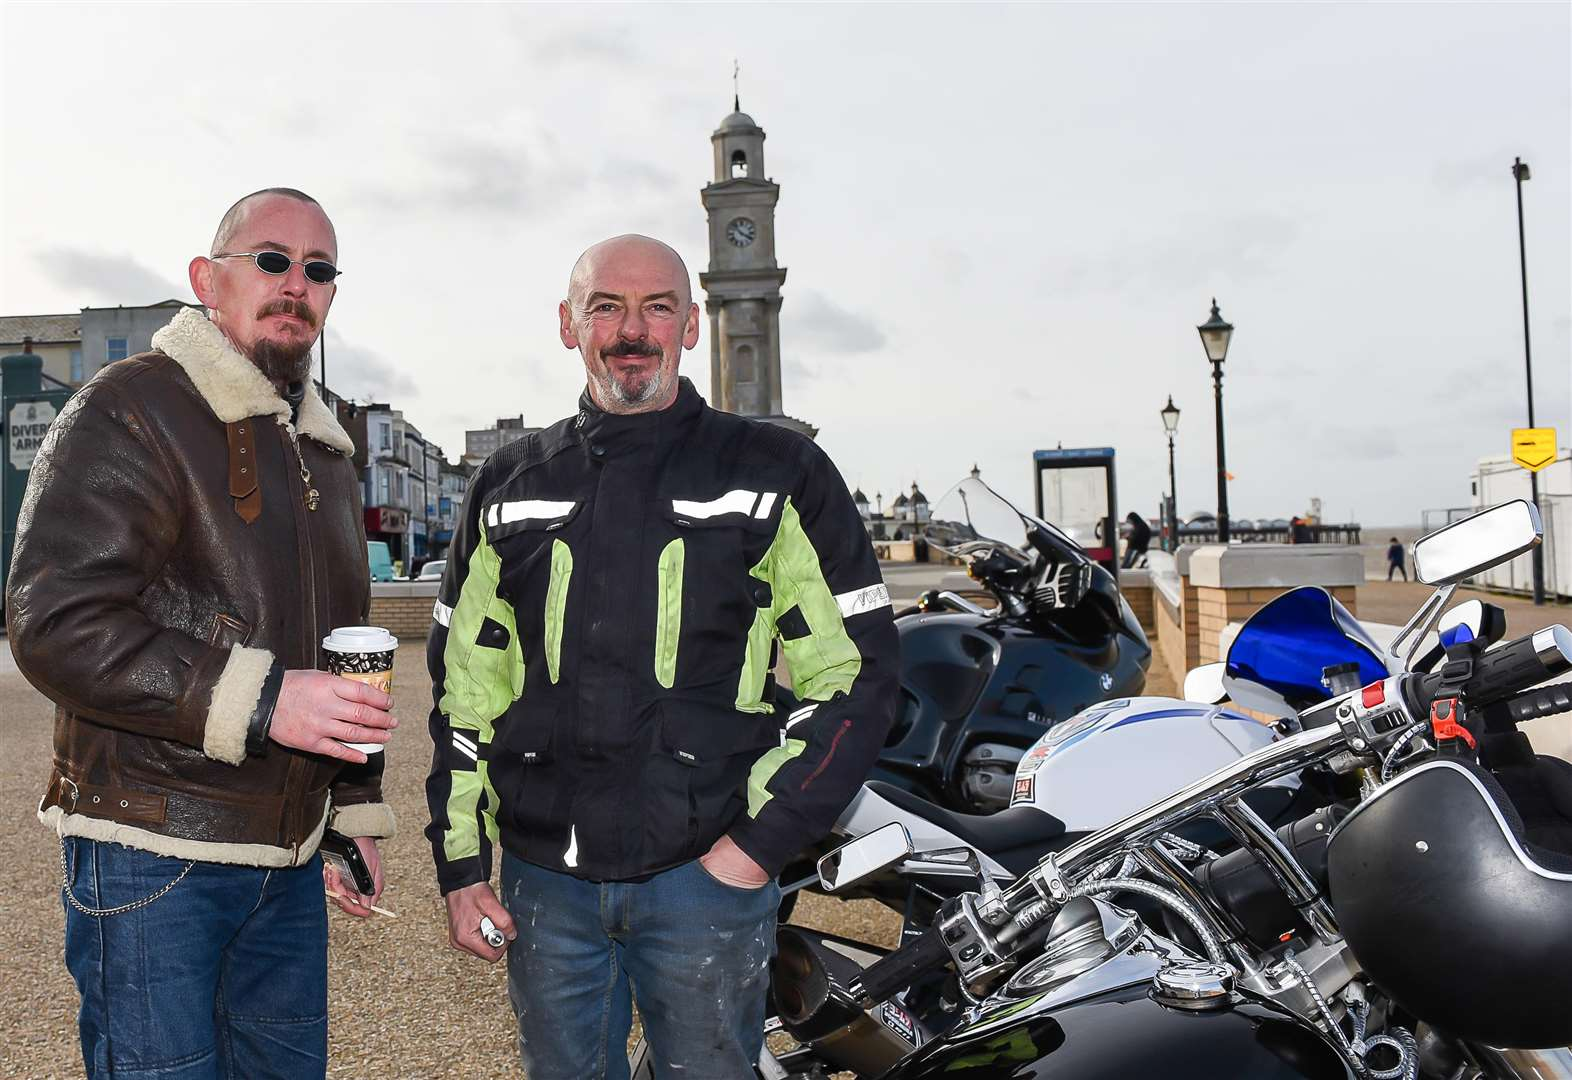 Bikers threaten protest over pavement parking ban